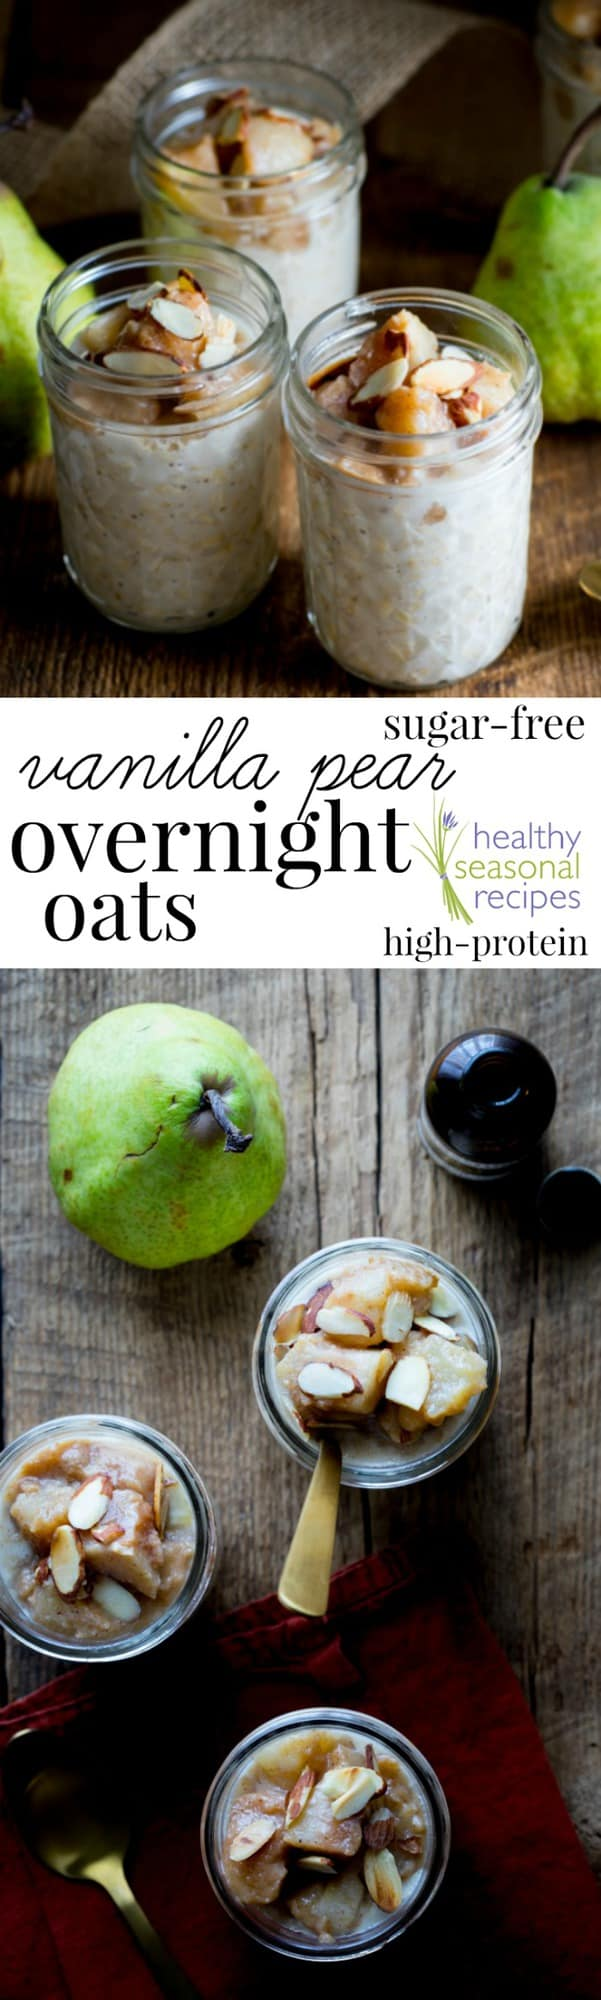 Pear and Vanilla oats collage with text